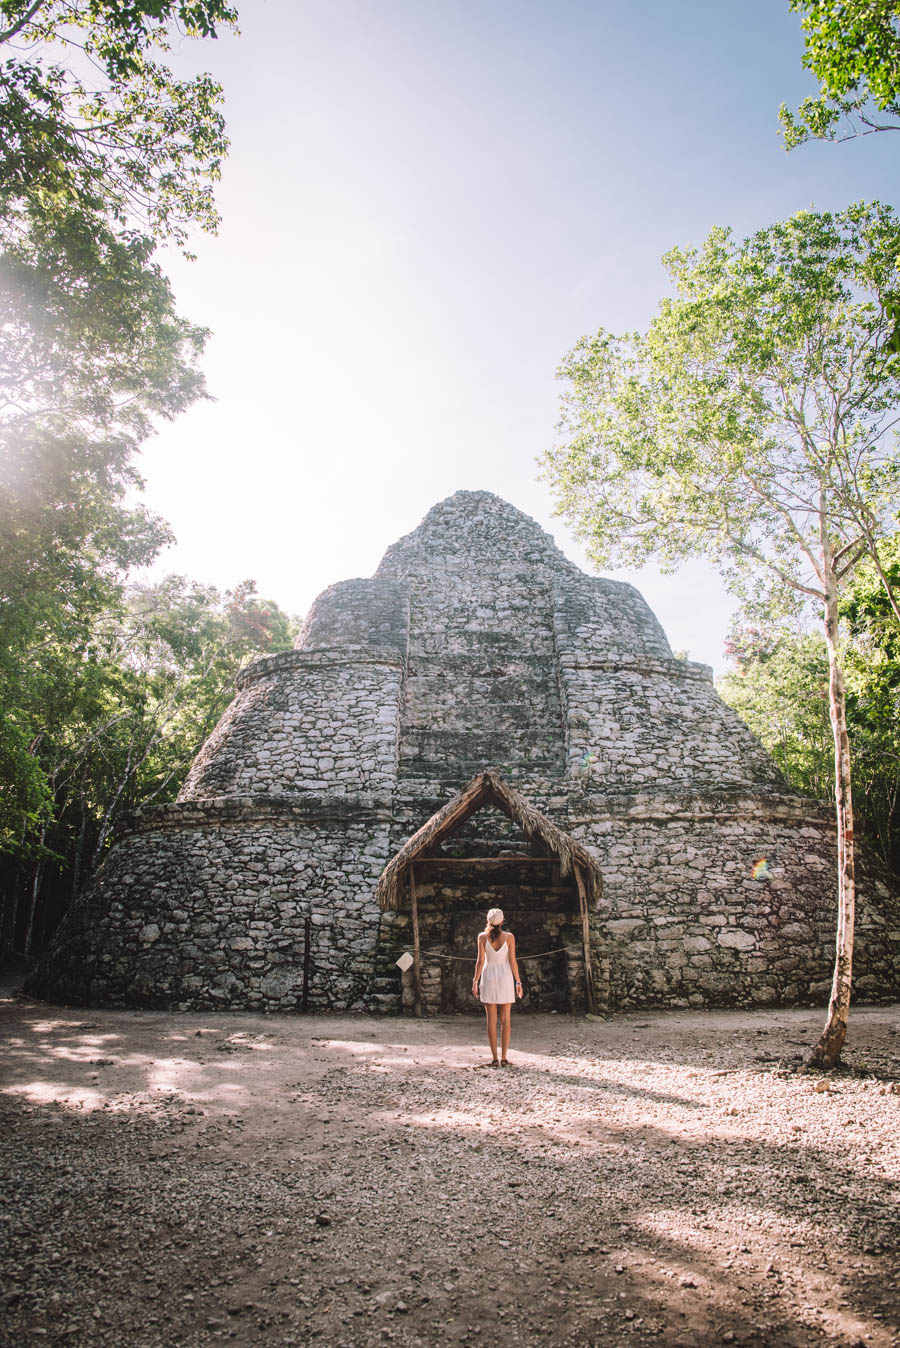 Discover the perfect day trip from Tulum to Coba, Valladolid and cenotes. Coba is one of the best Mayan ruins in Mexico. Find out how to get to Coba and when to go for the best time.